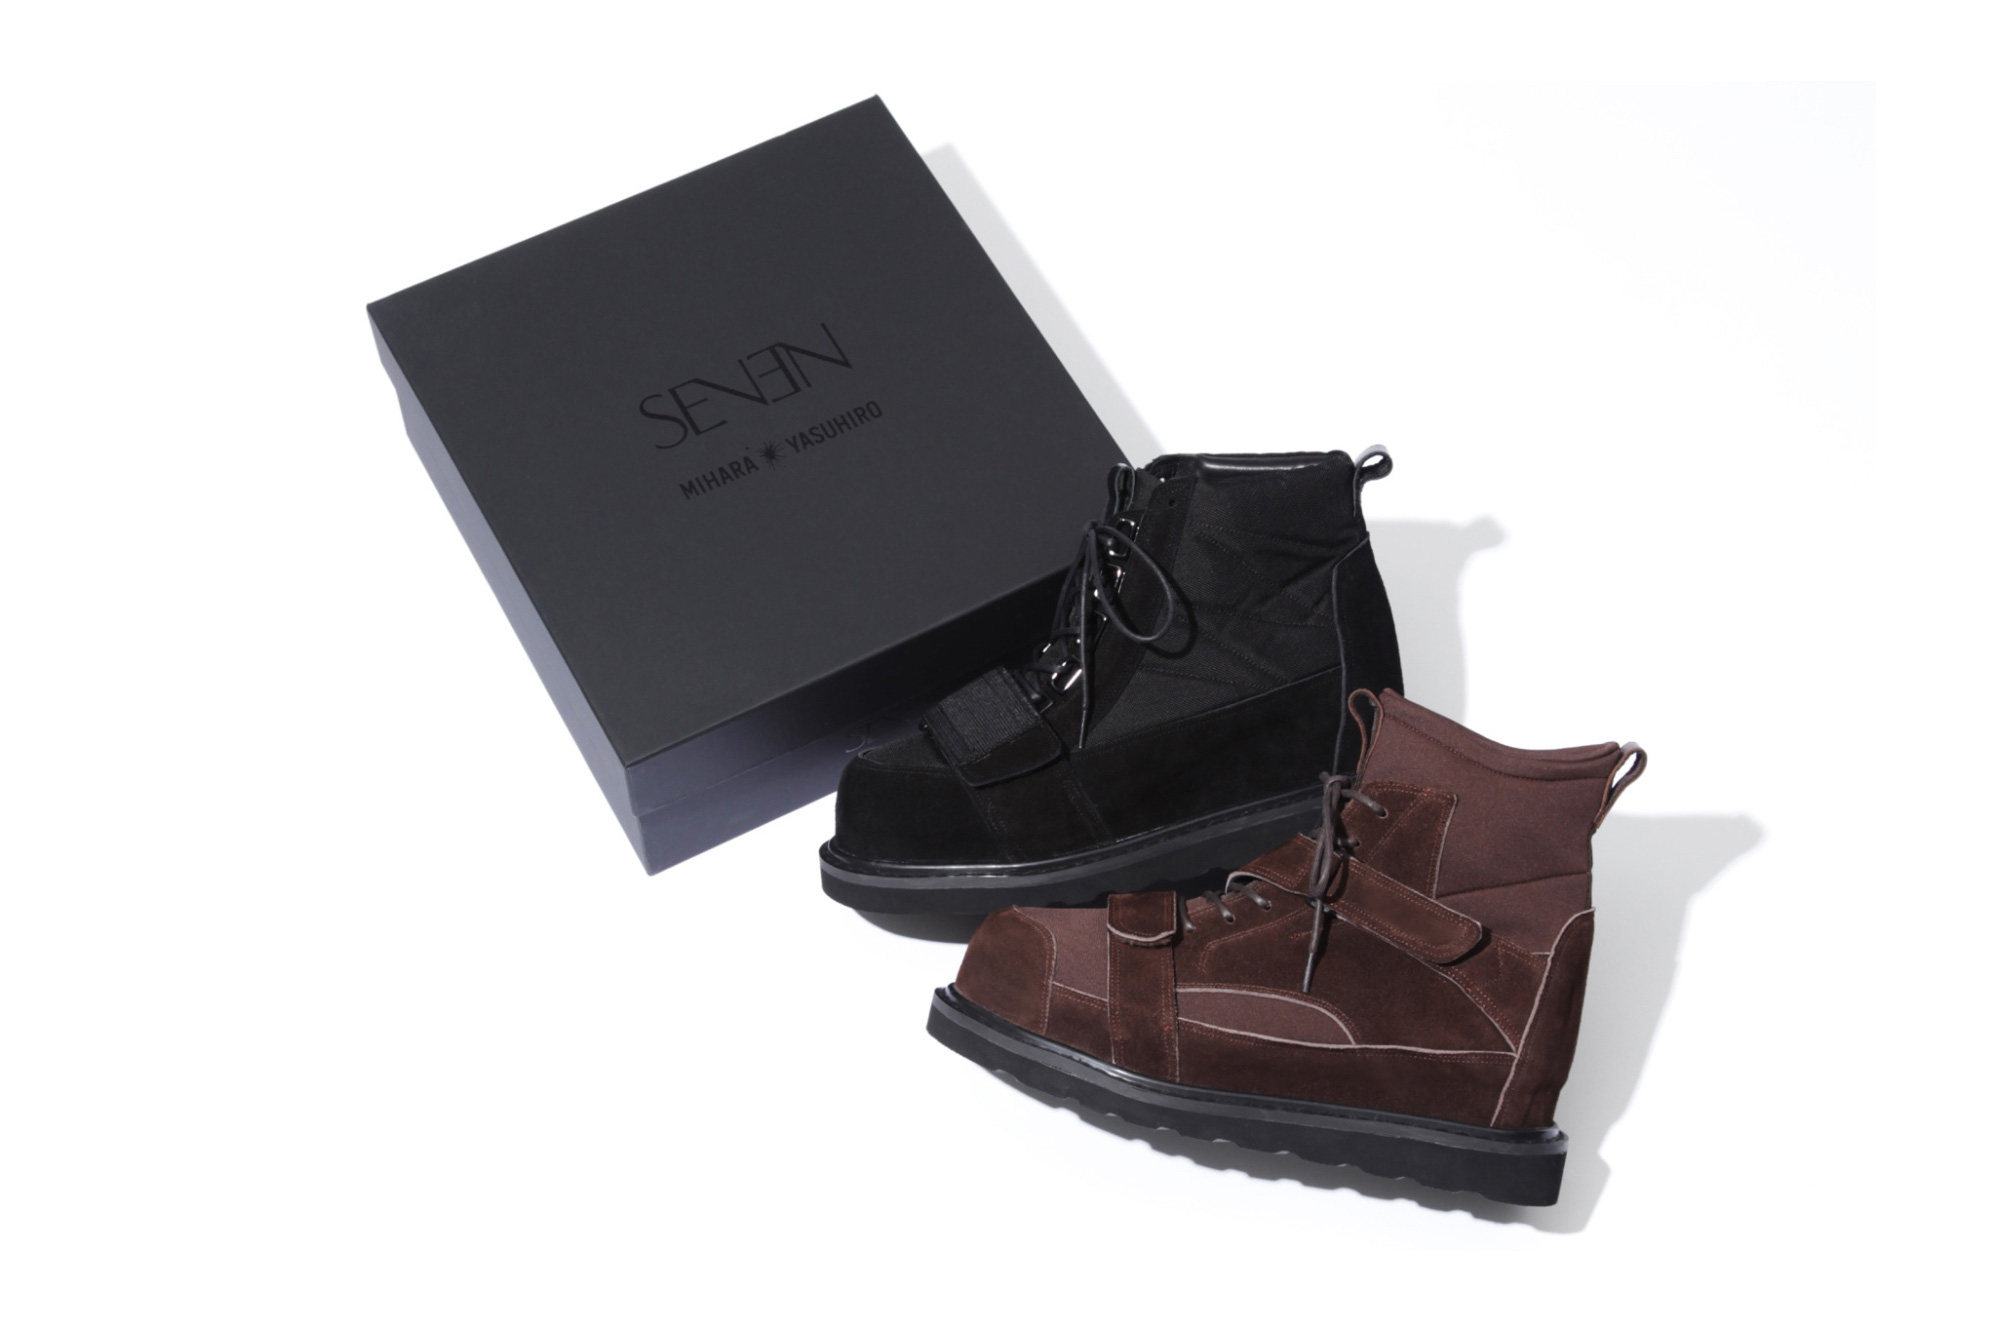 MIHARAYASUHIRO Teams up With STUDIO SEVEN on Two Boot Styles